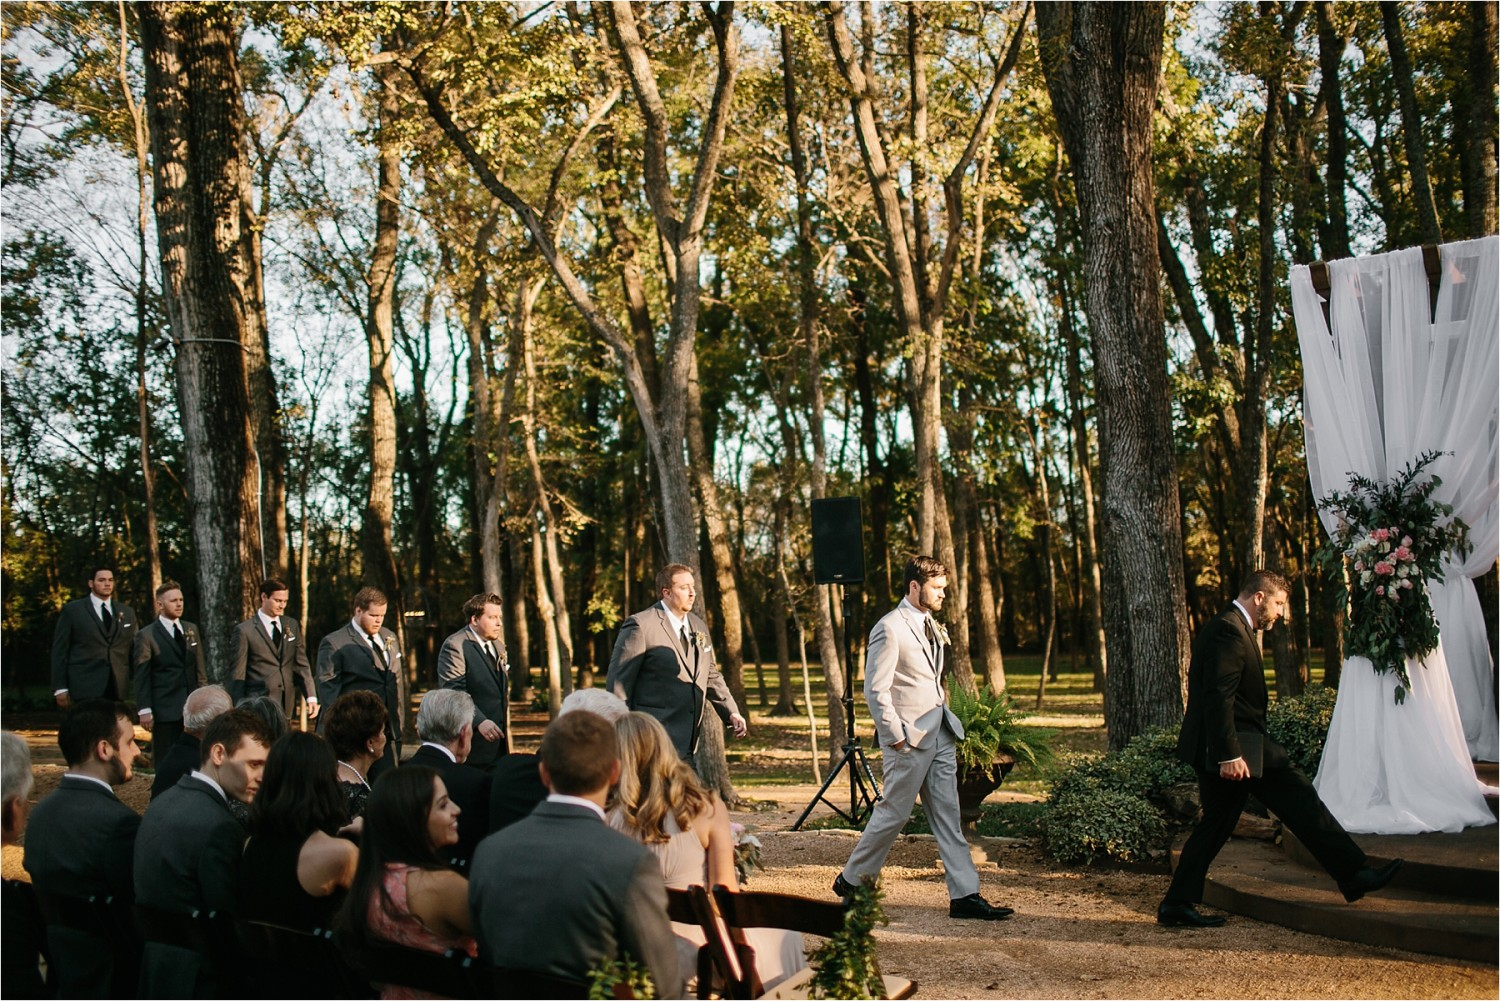 brad-lara-__-a-grey-and-blush-pink-intimate-wedding-at-hidden-waters-event-center-in-waxahachie-tx-by-north-texas-wedding-photographer-rachel-meagan-photography-_-040